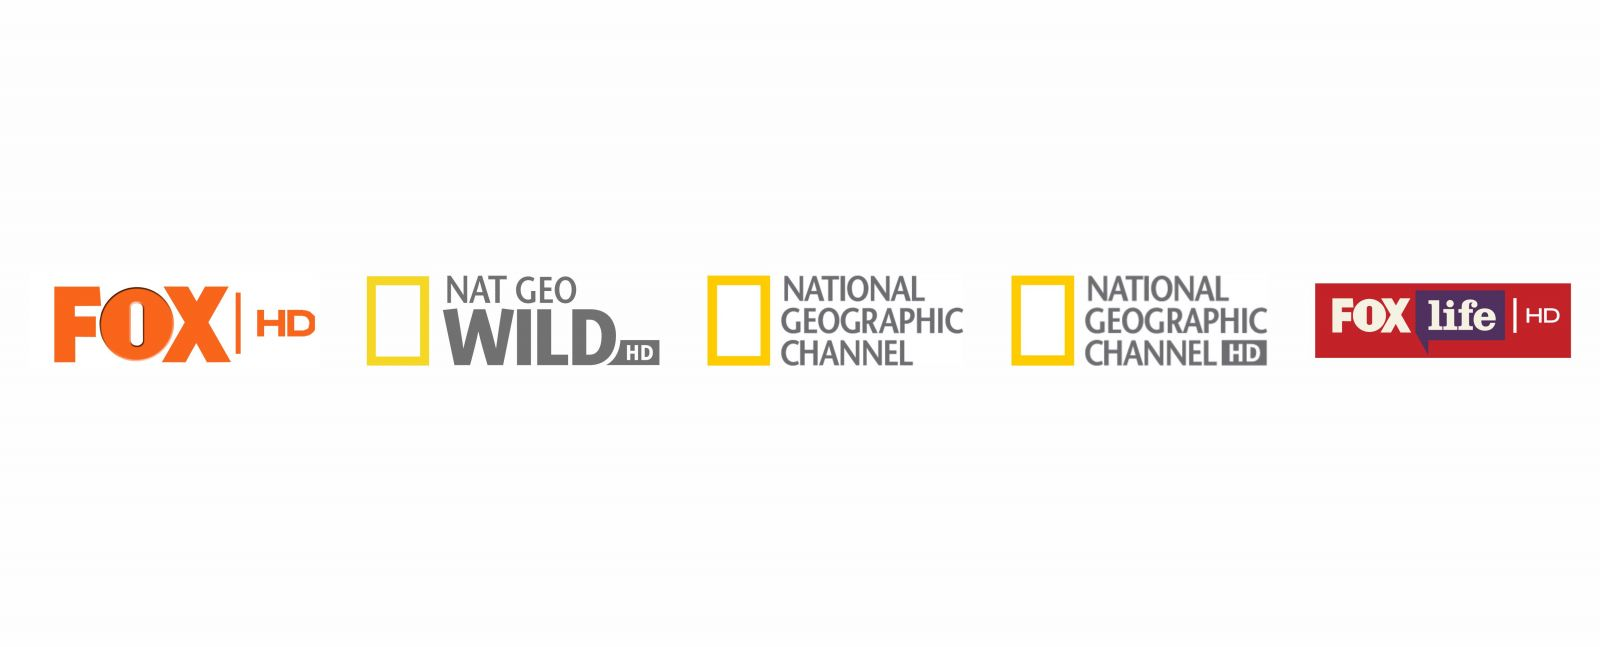 channel homepage nationalgeographiccom - 1600×647